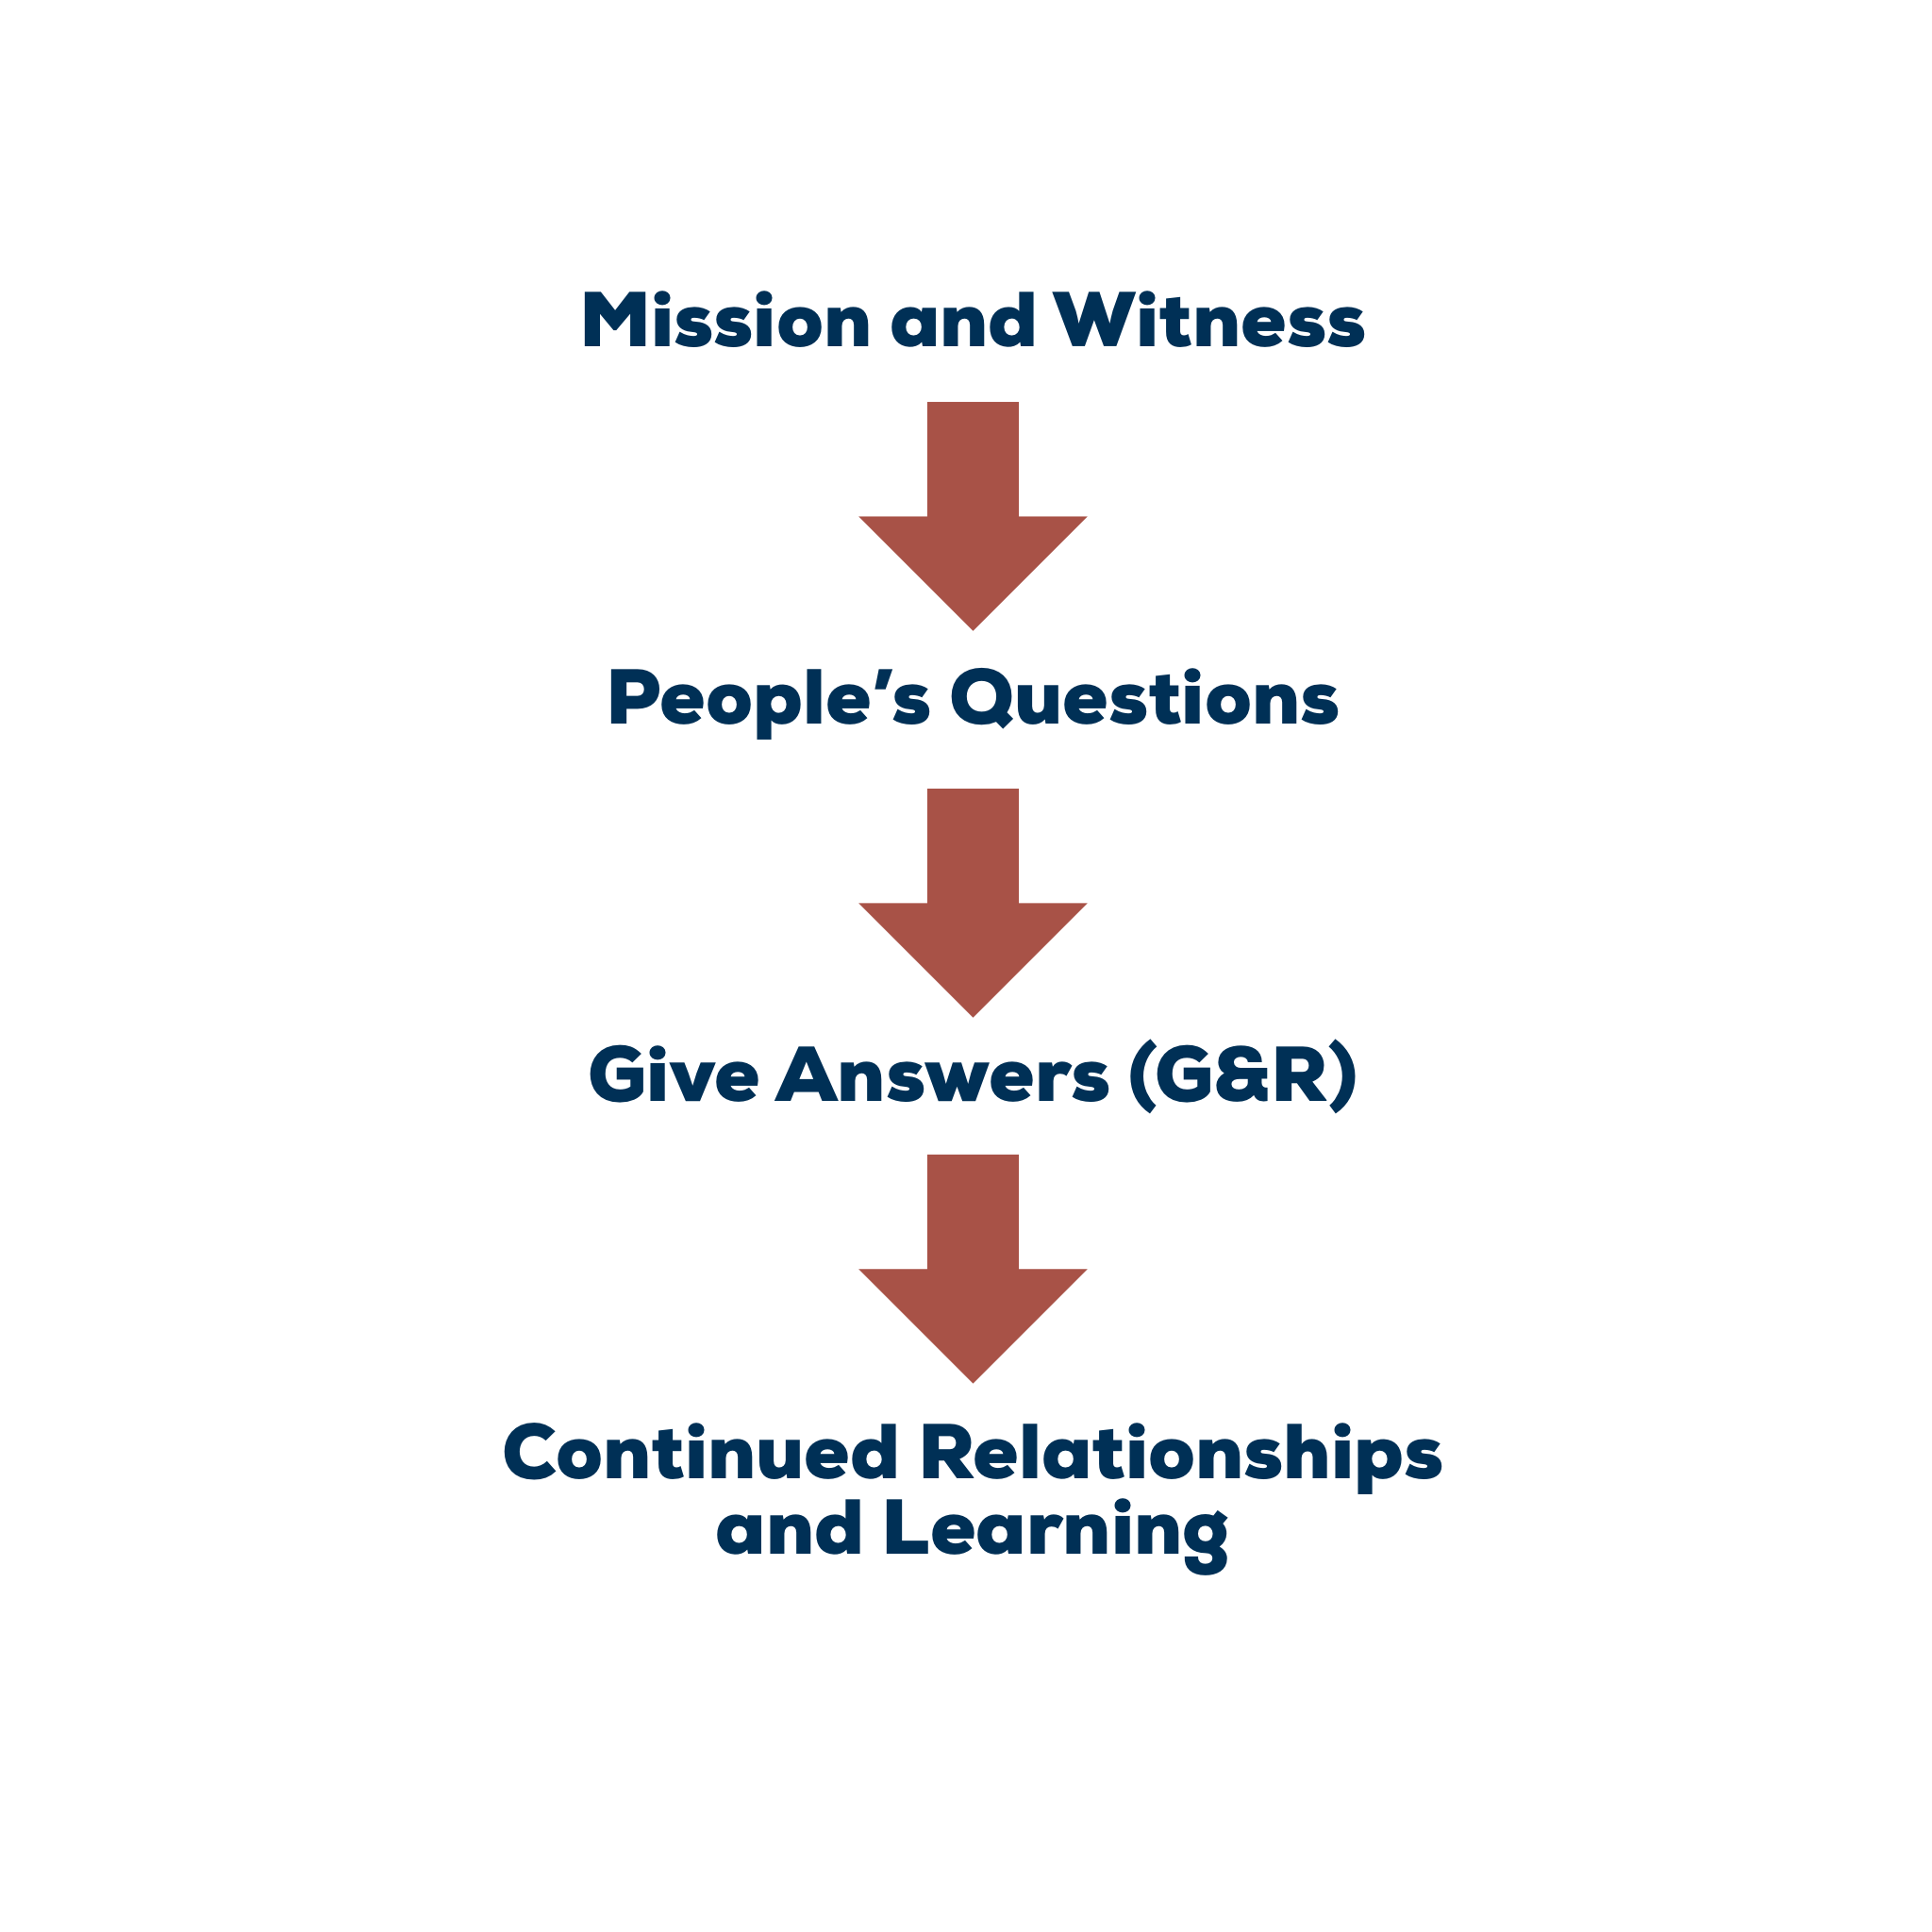 Figure 2 - Apologetics in the Context of Mission